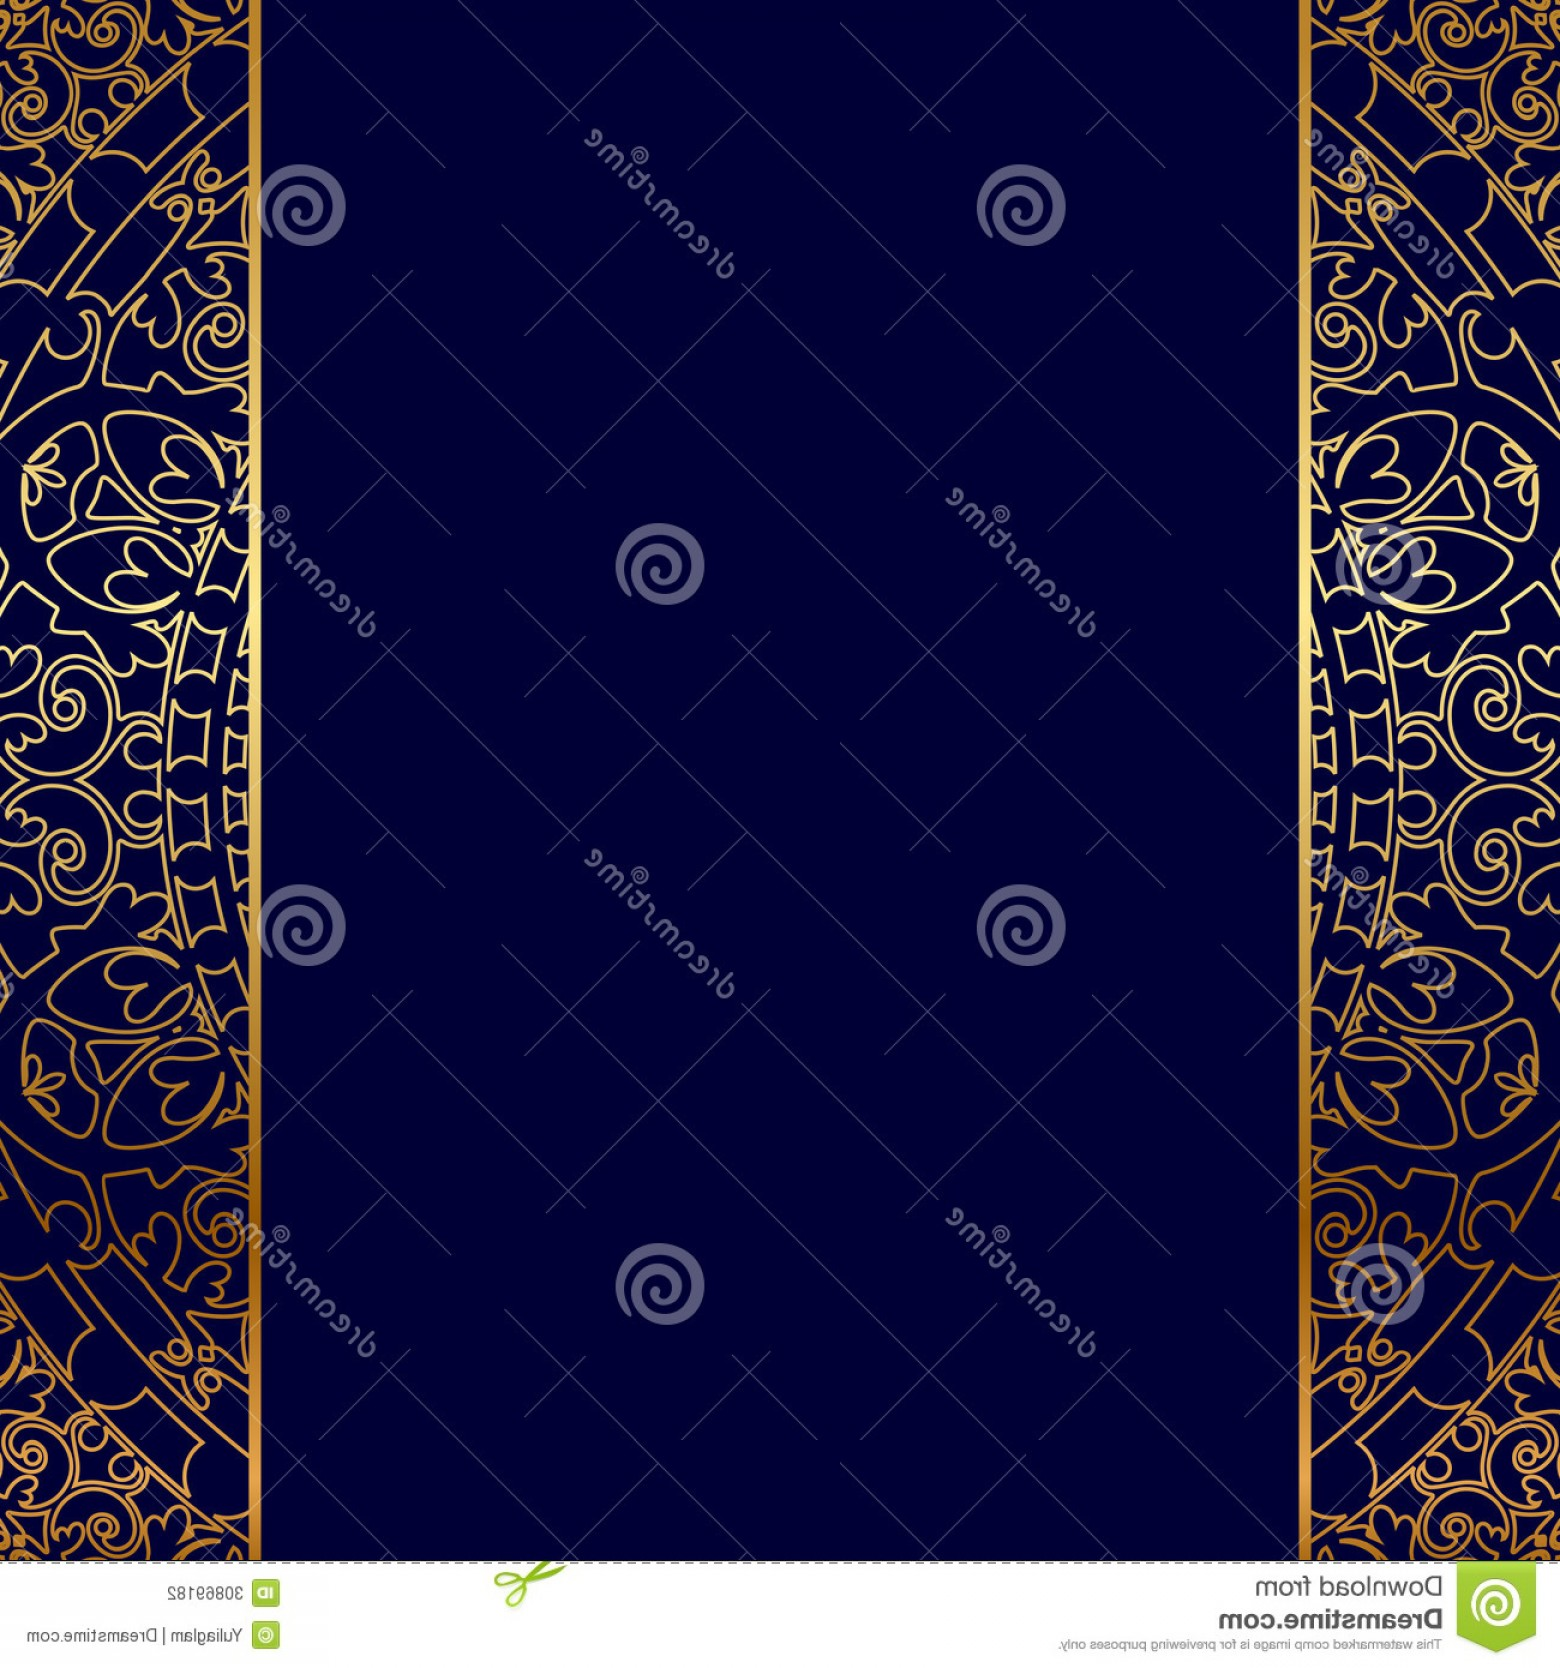 Blue And Gold Border Vector: Stock Photography Gold Ornate Border Vector Blue Image